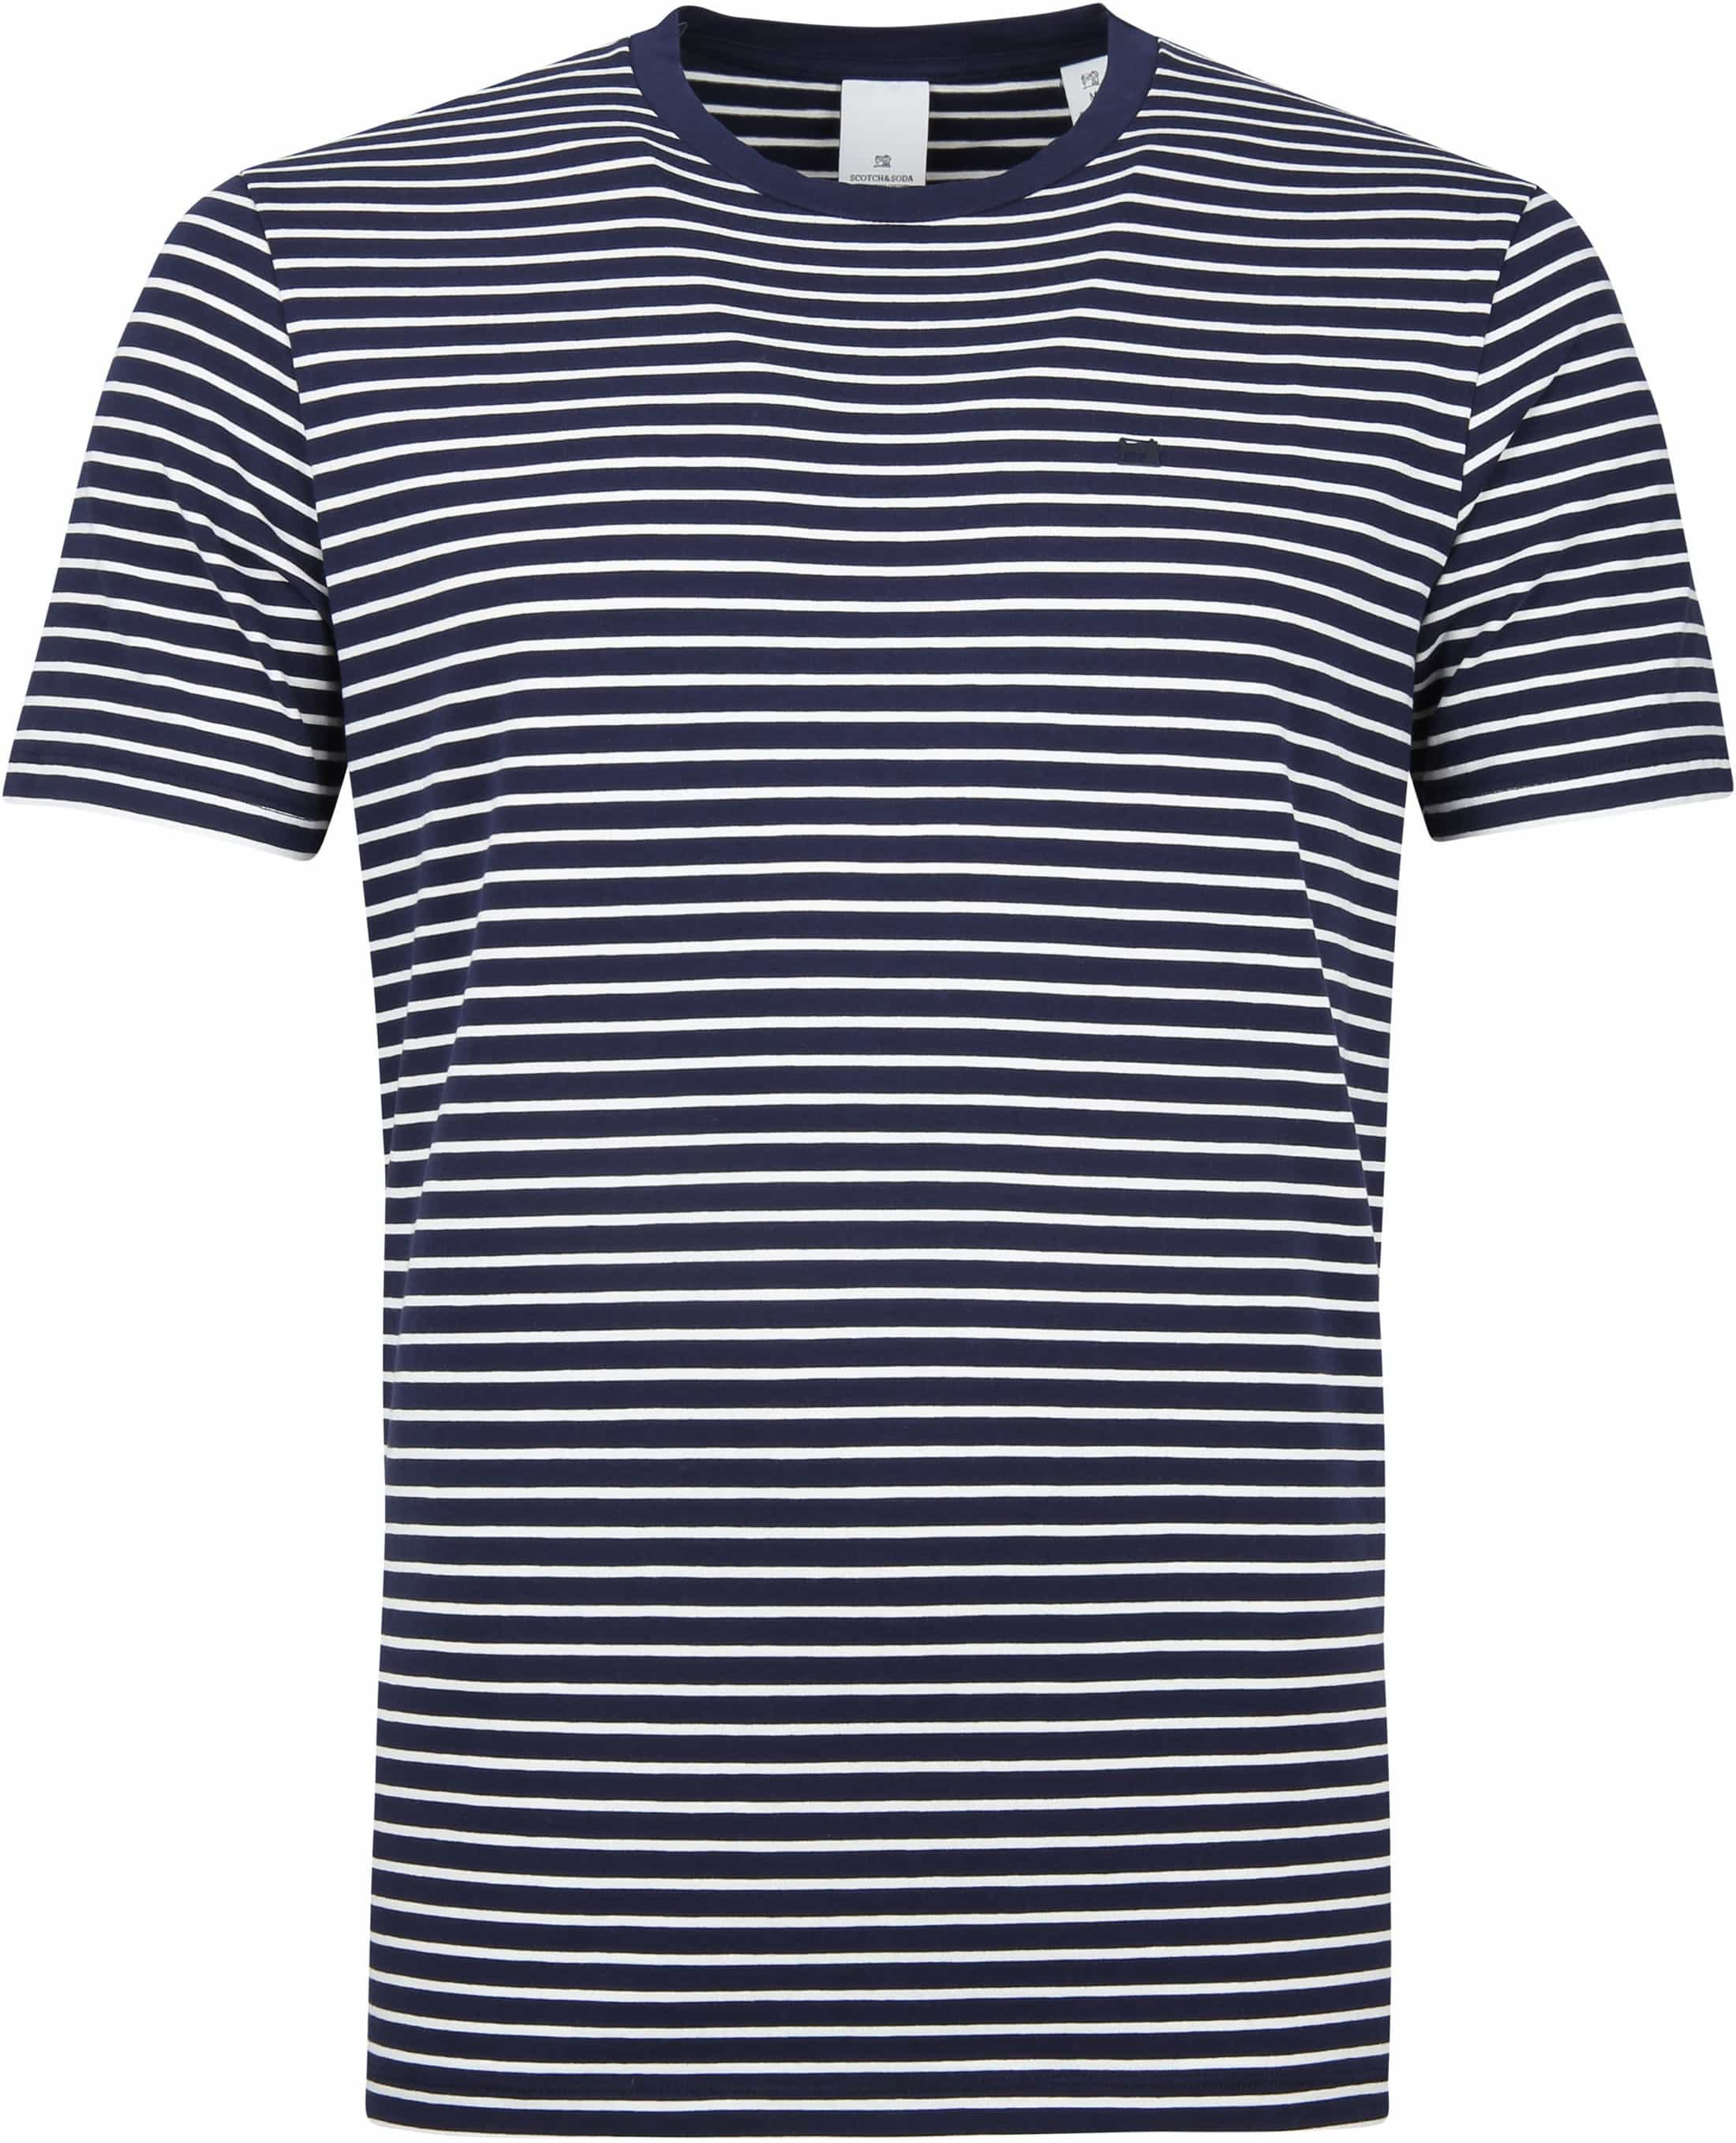 Scotch and Soda T-shirt Navy Strepen foto 0